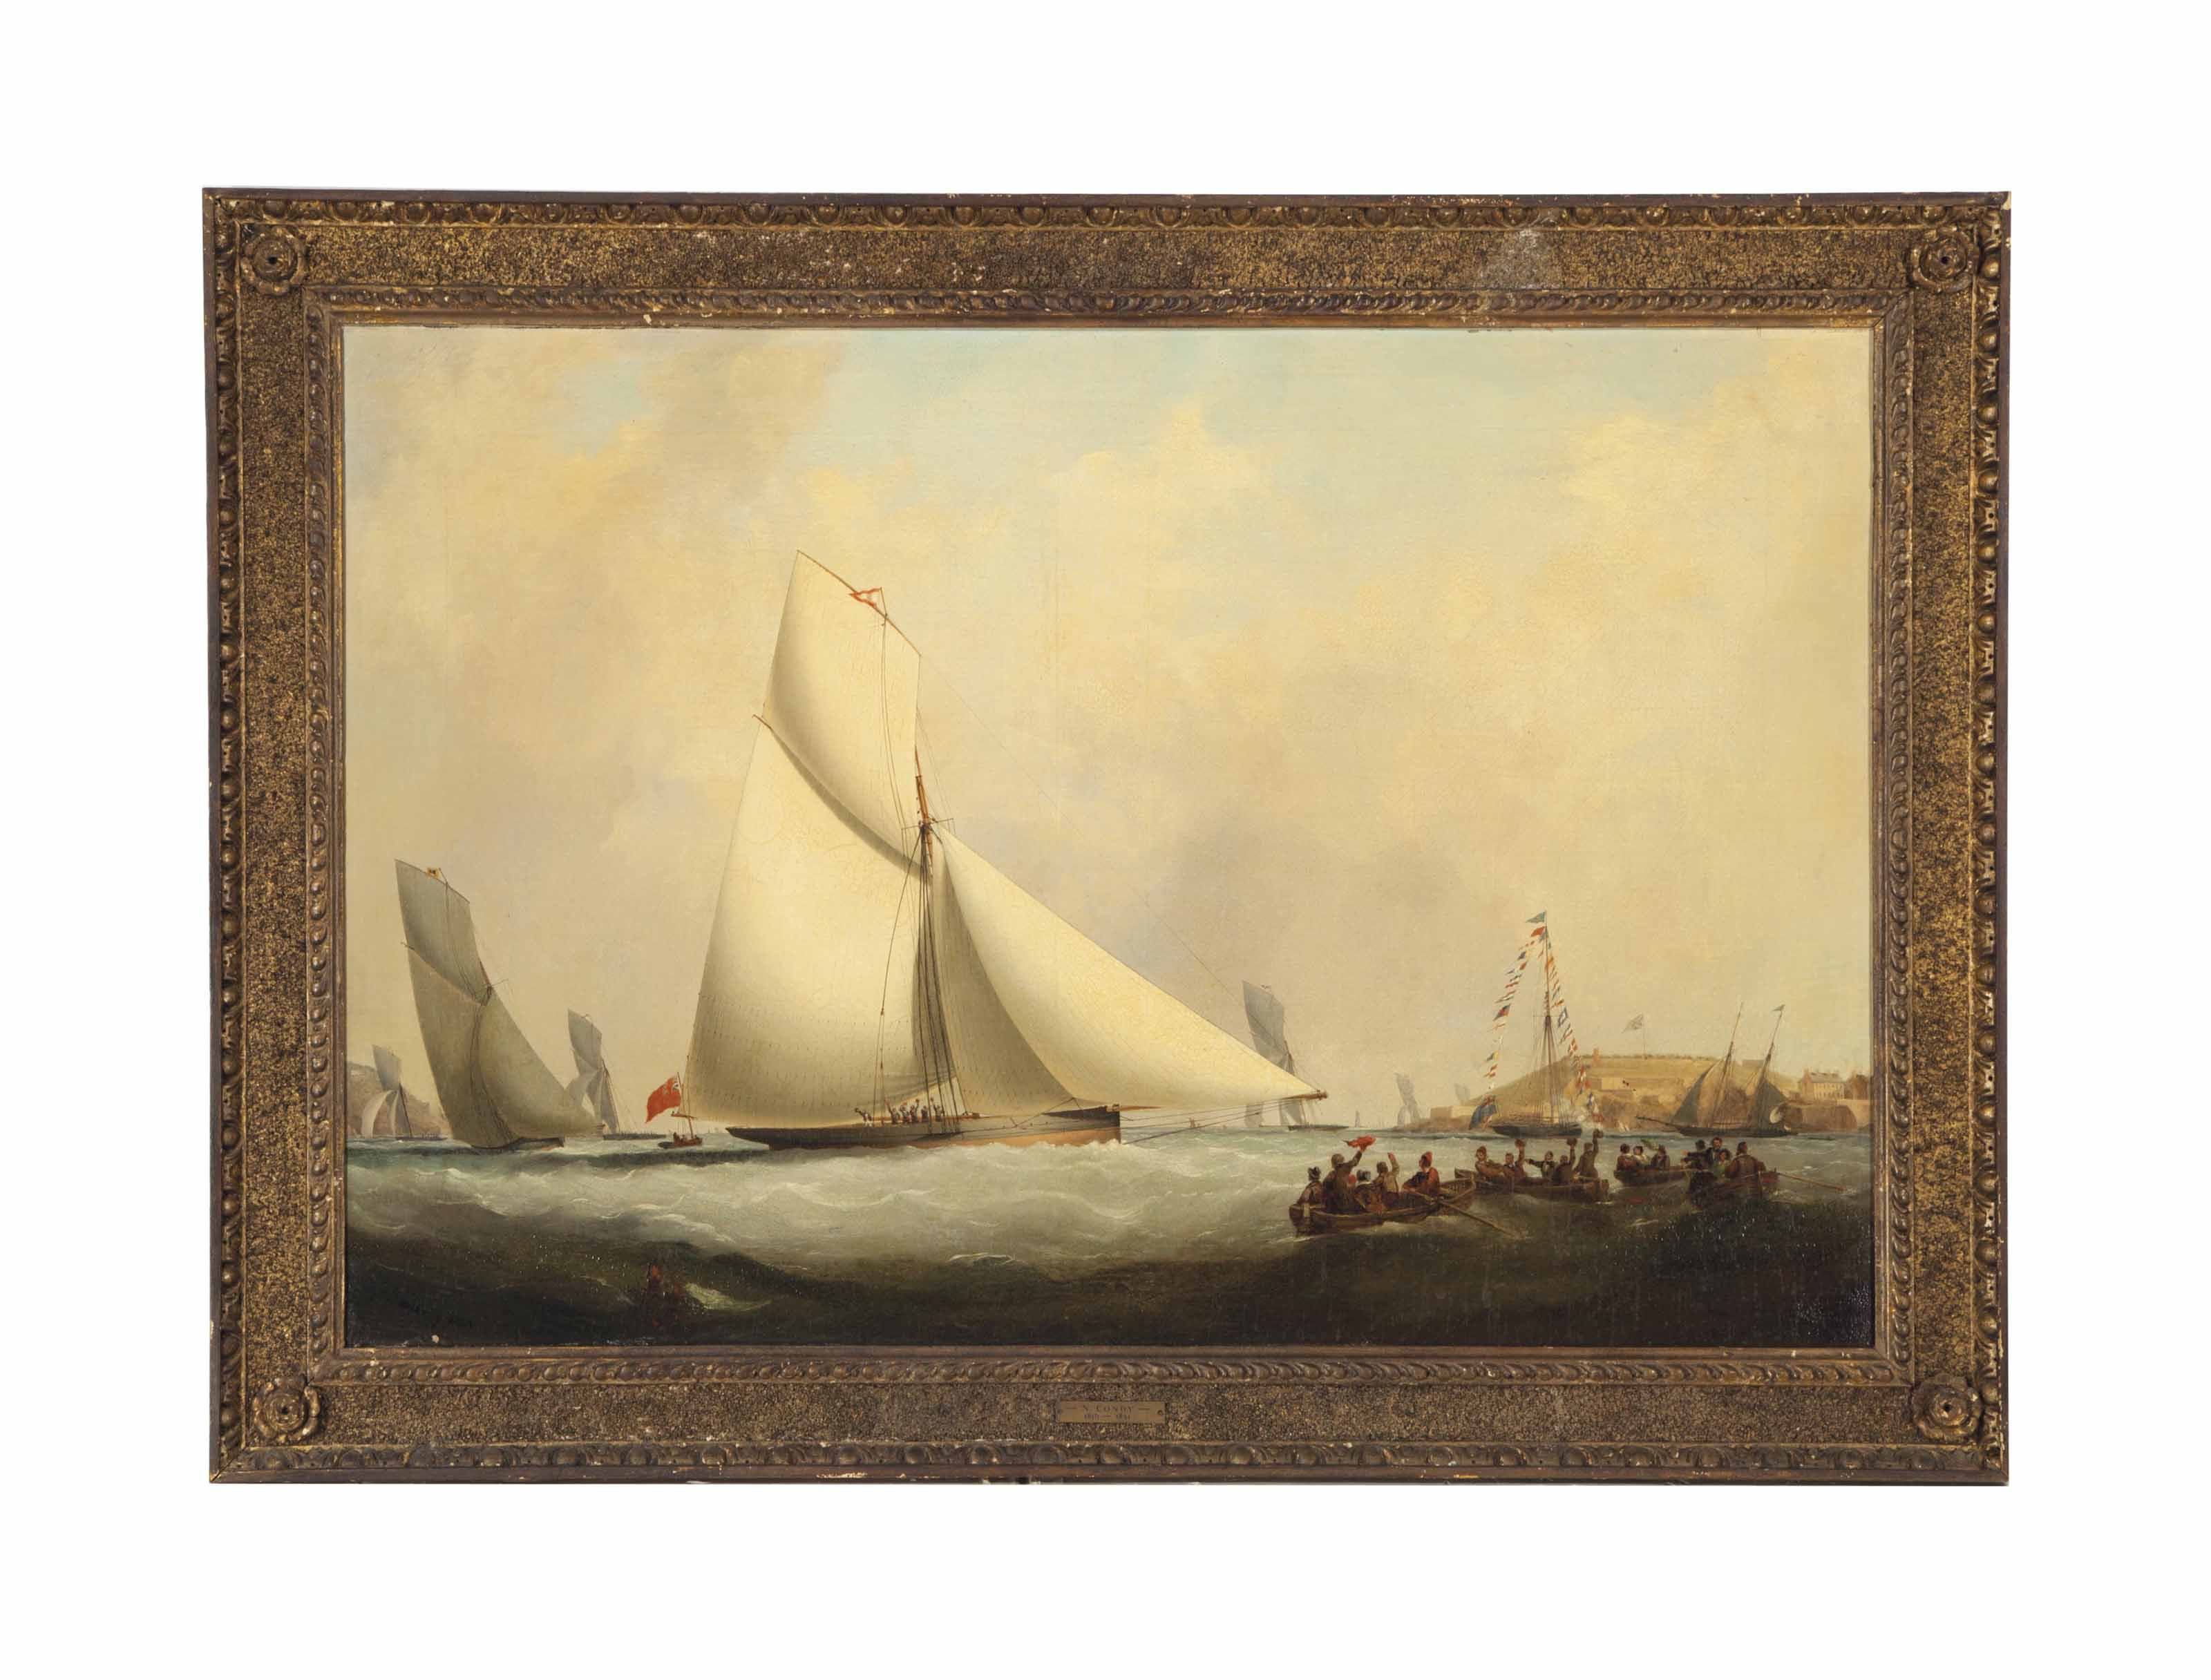 The arrival of a schooner in a harbor